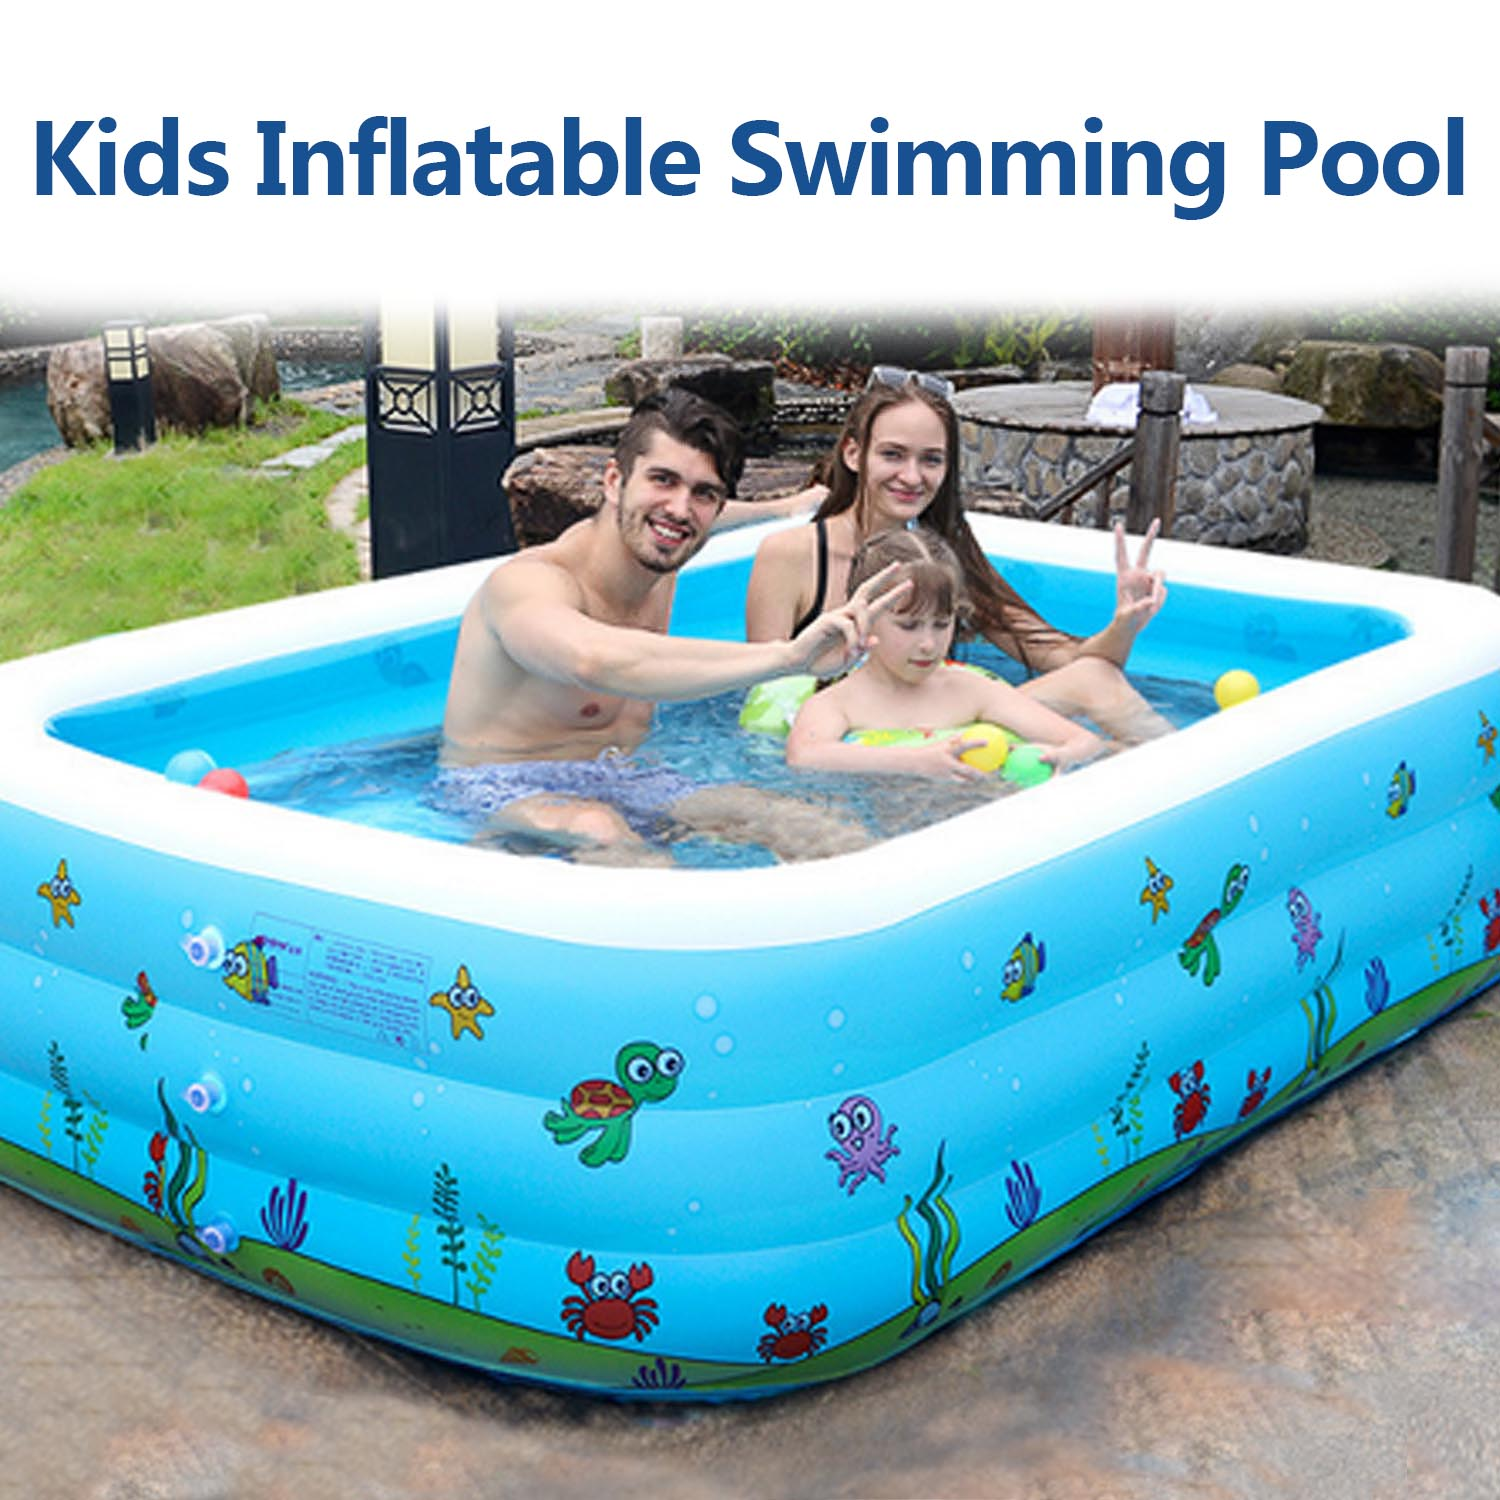 130/110CM Kids Inflatable Pool Family Rectangular Inflatable Swimming Pool Bathing Tub Kids Indoor Outdoor Summer Swimming Pool